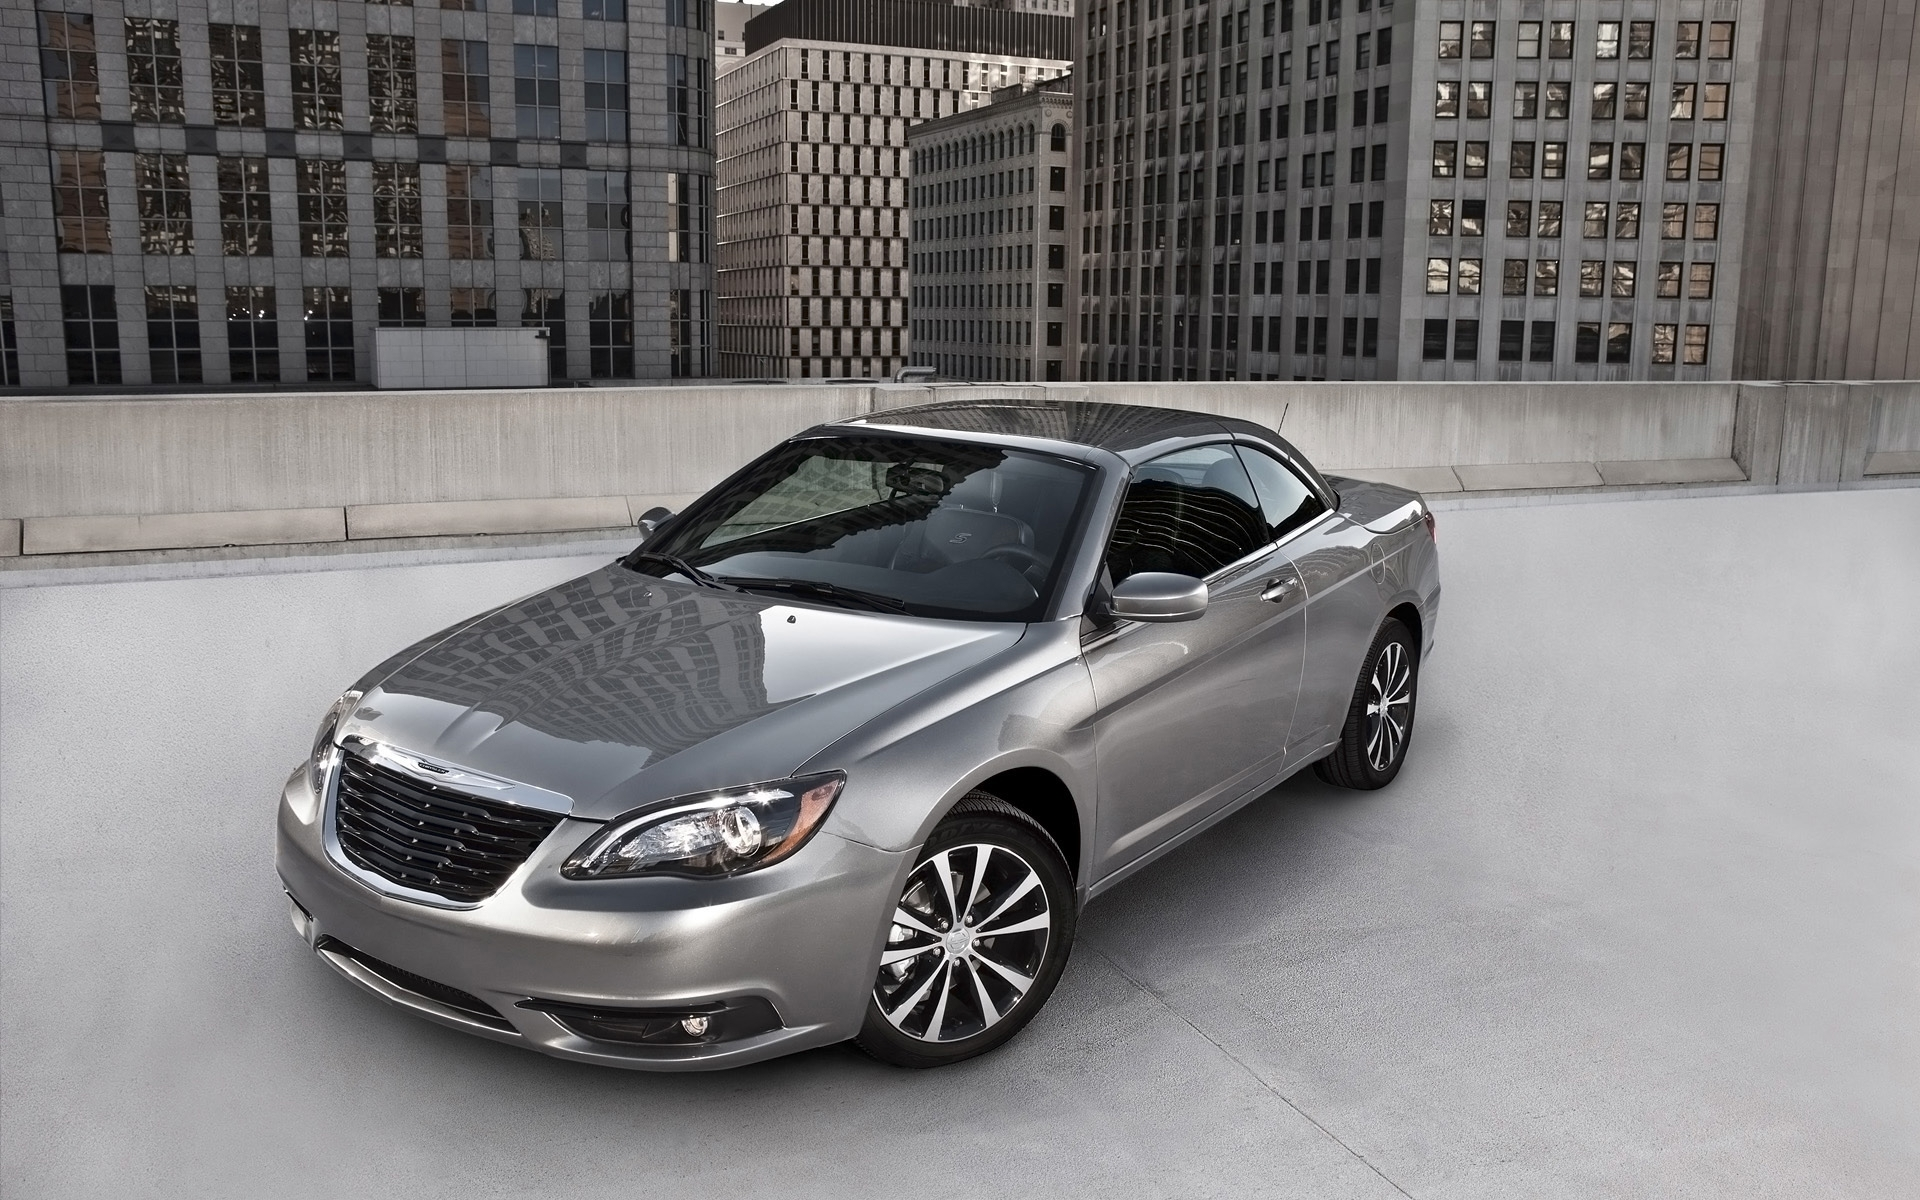 Chrysler 200 wallpaper 30752 1920x1200